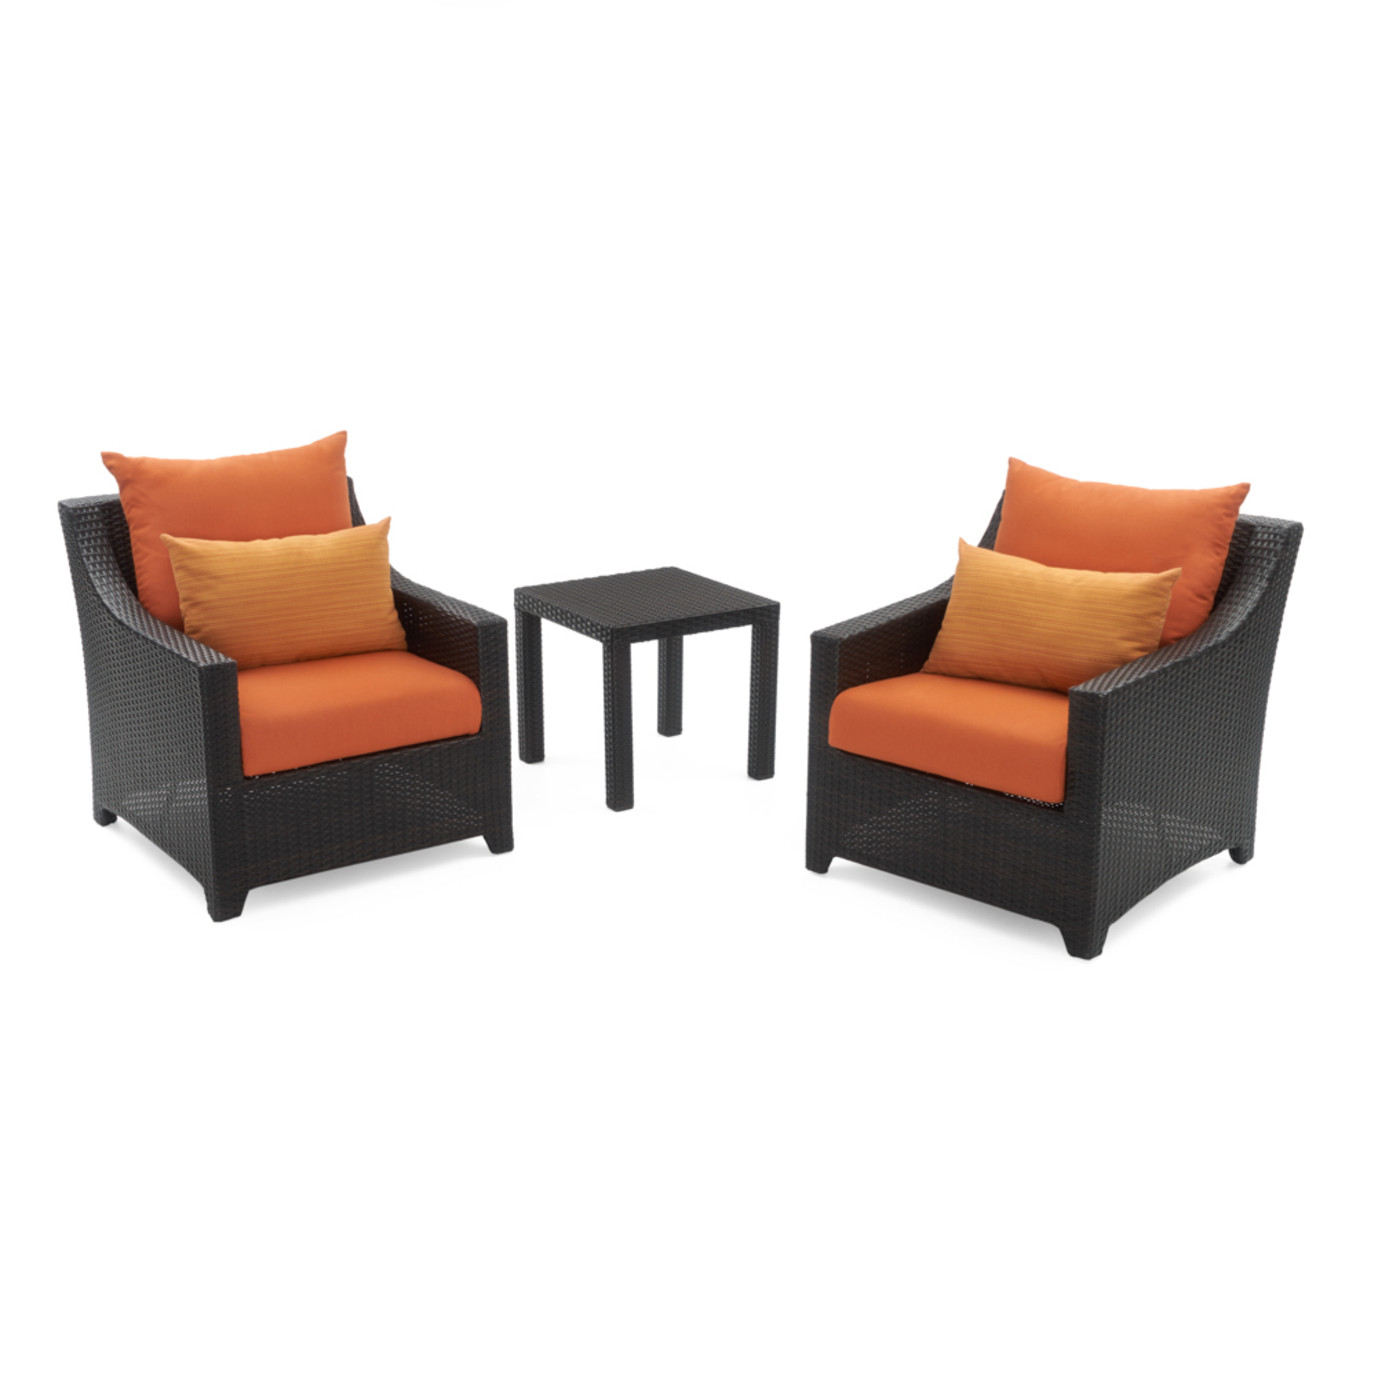 Deco™ Club Chairs and Side Table - Tikka Orange